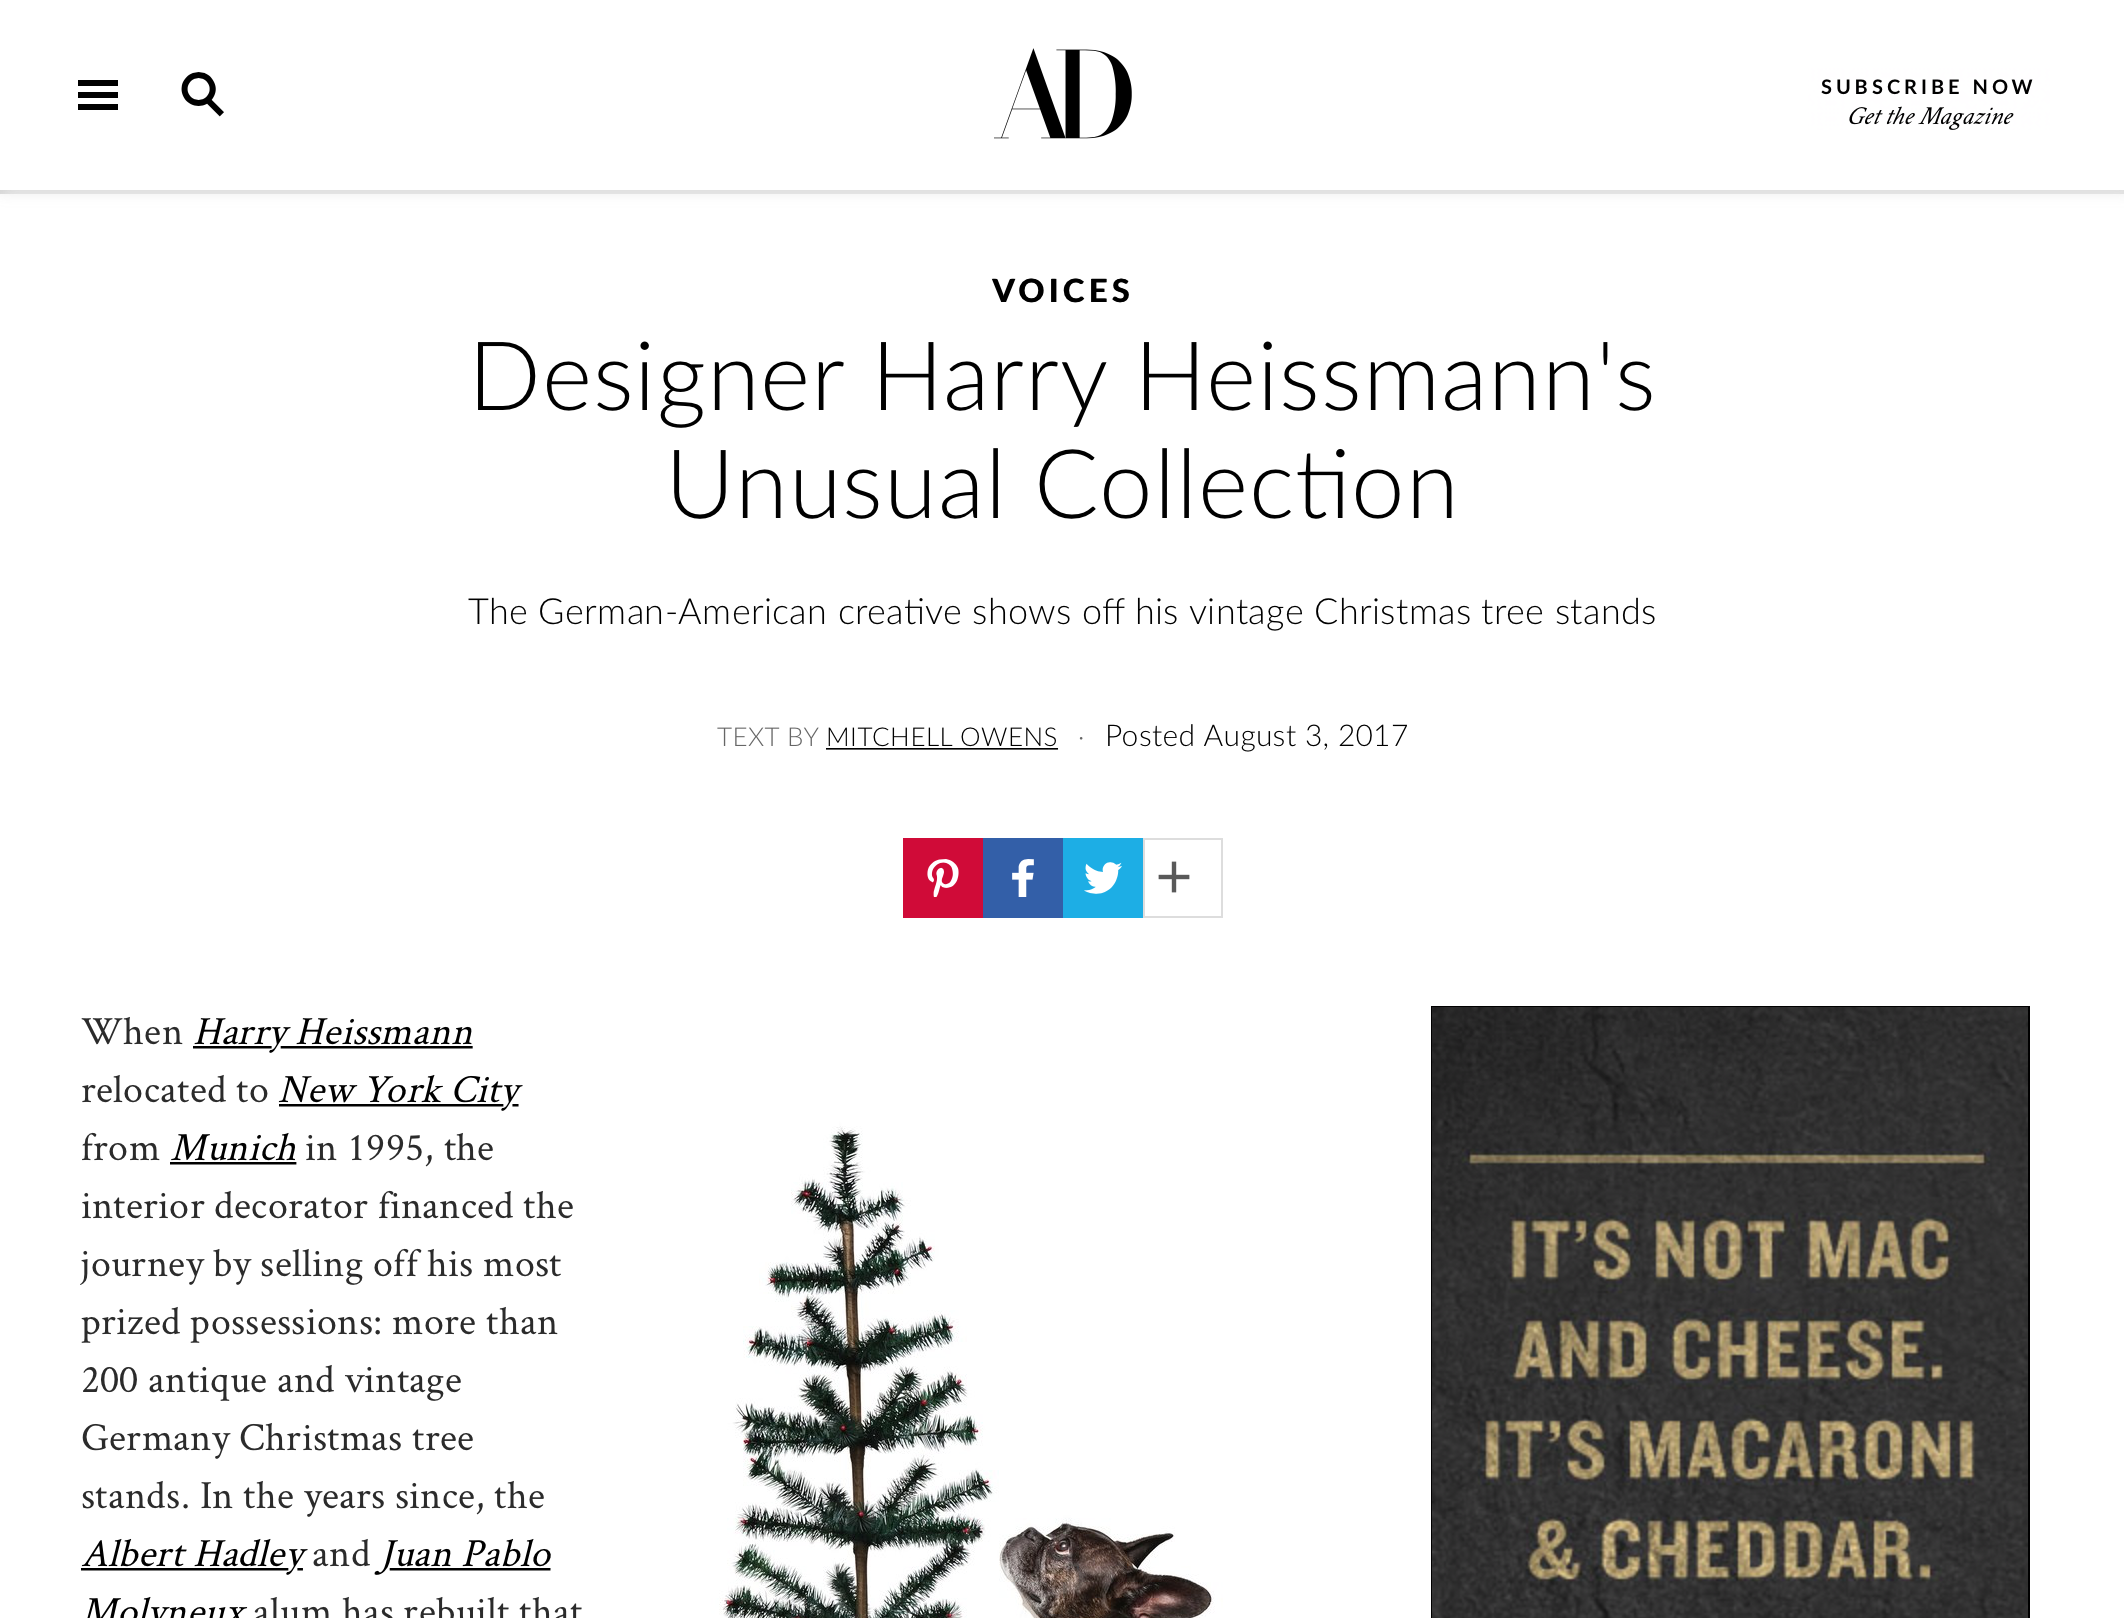 AD Voices: Unusual Collection - AD highlights Harry on their website.